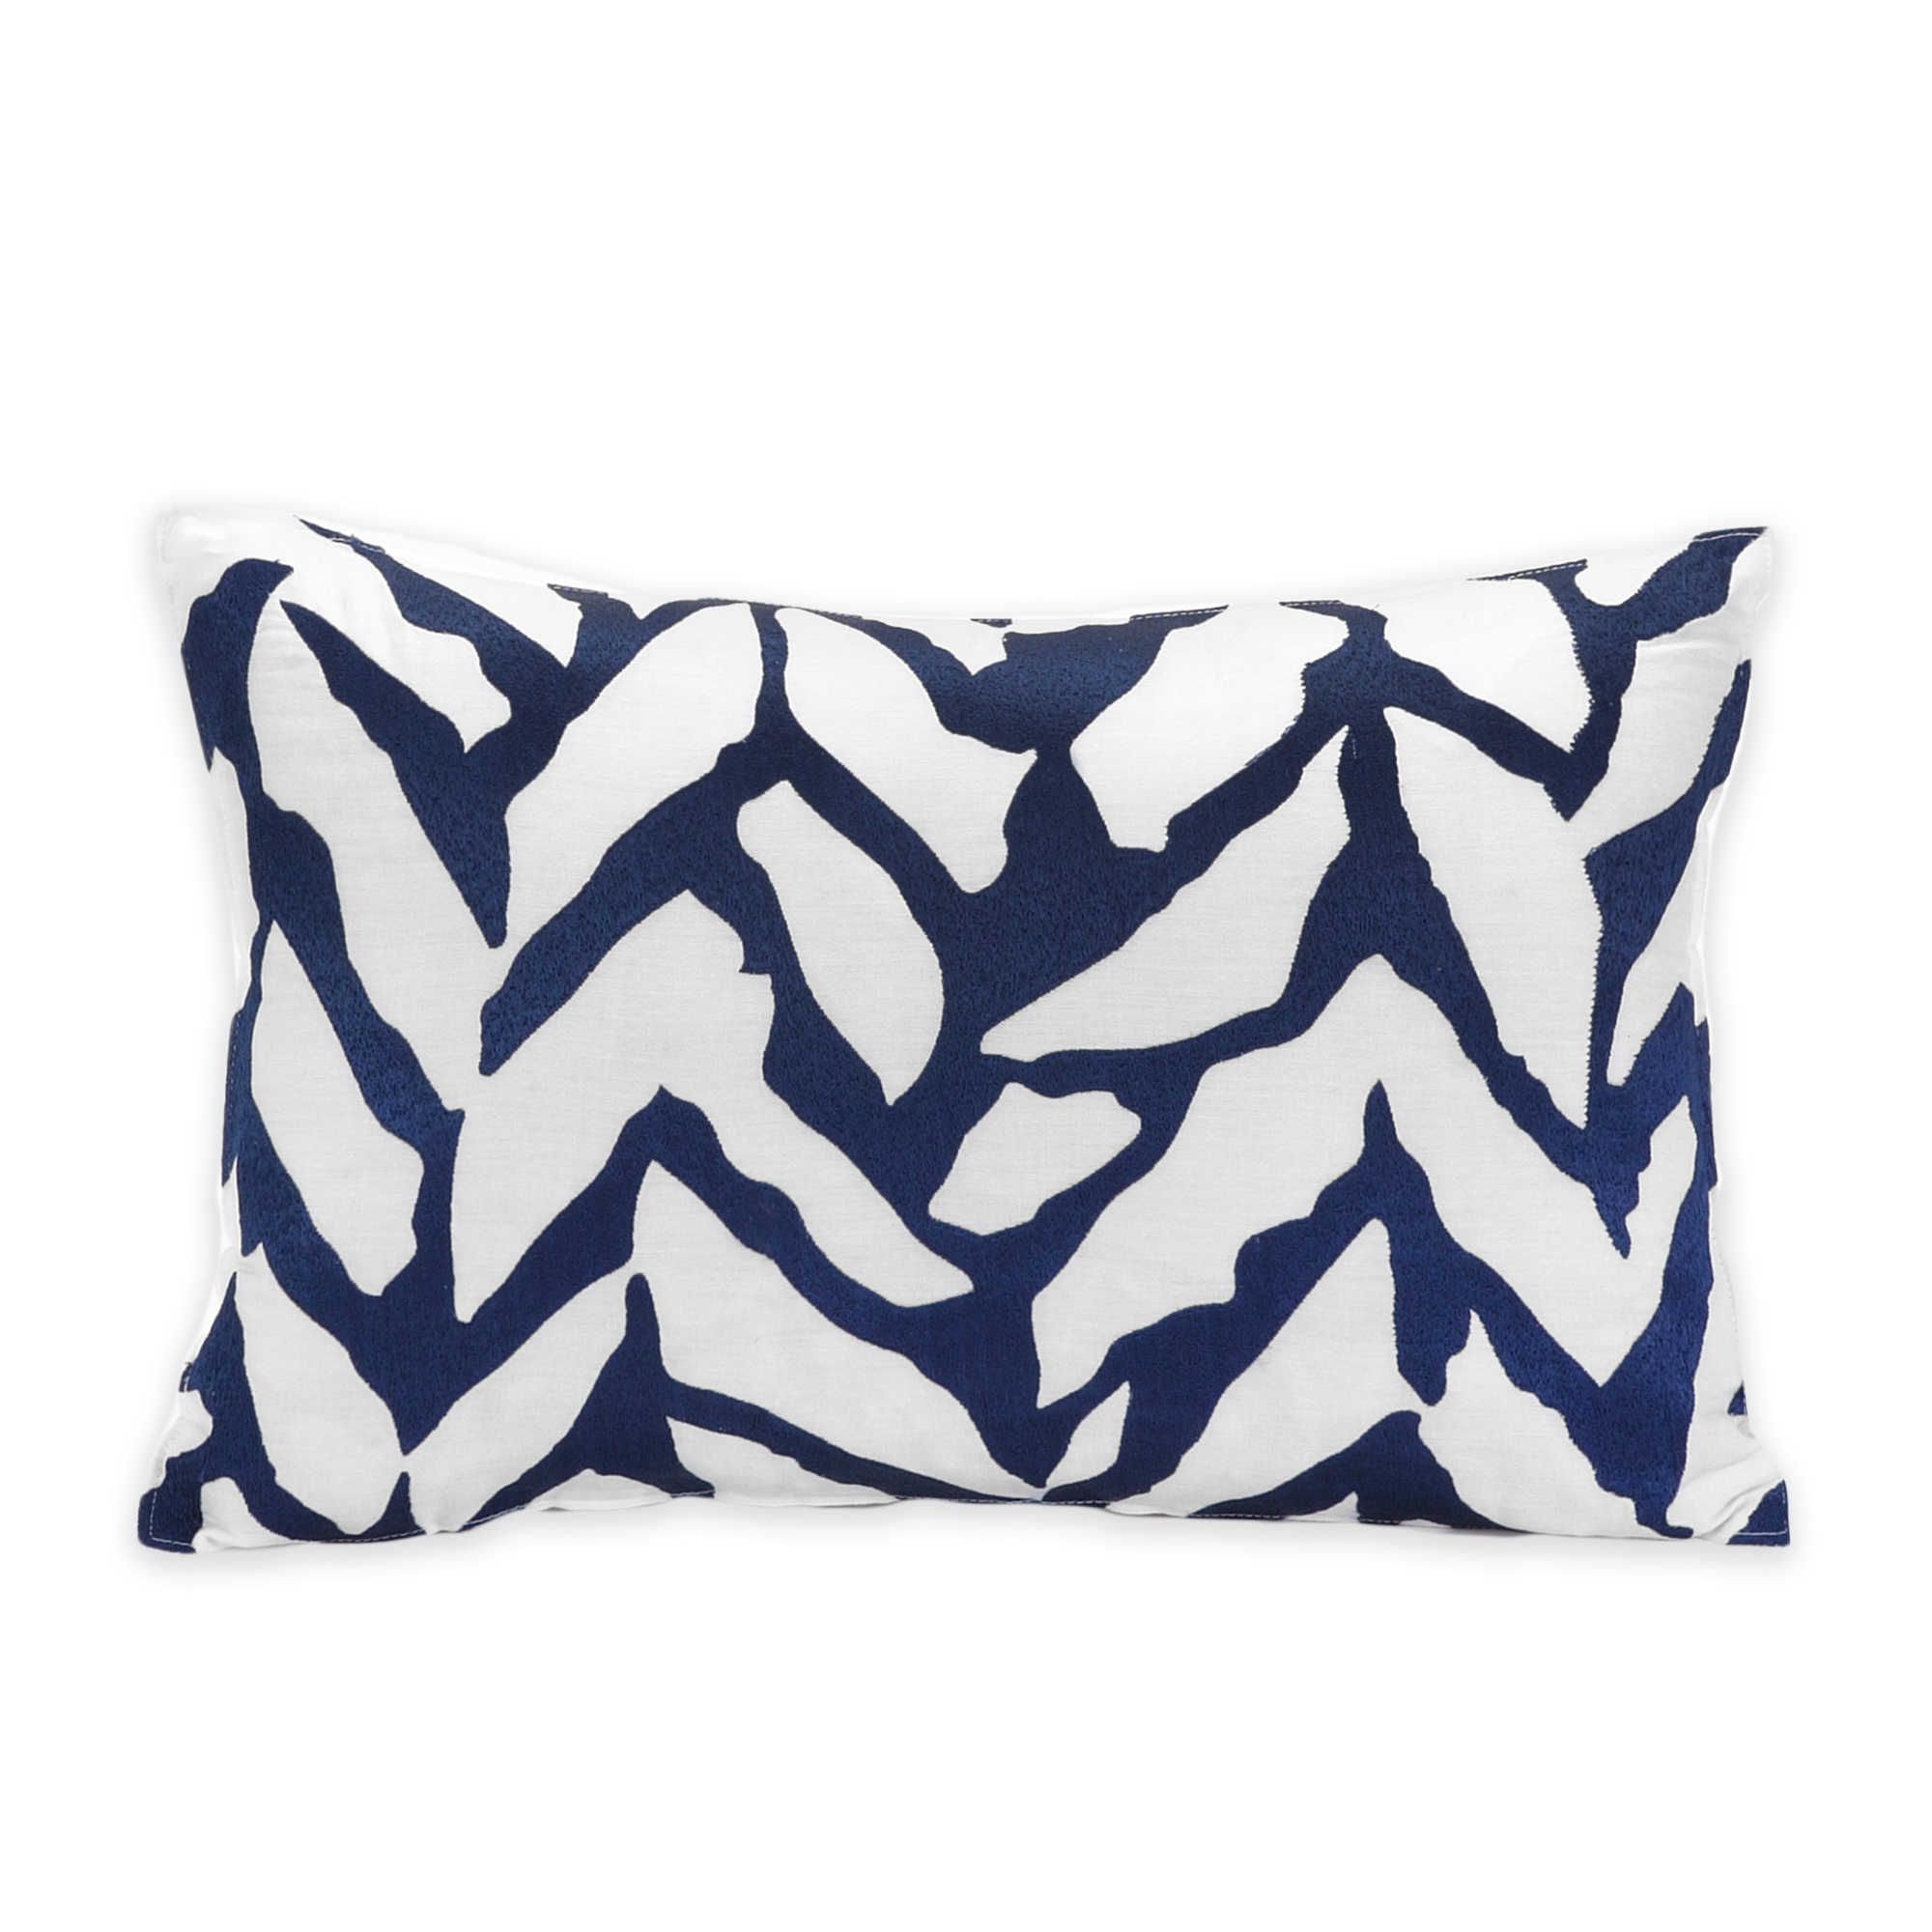 trina turk silver lake organic herringbone oblong throw pillow in blue white oreillers blancs